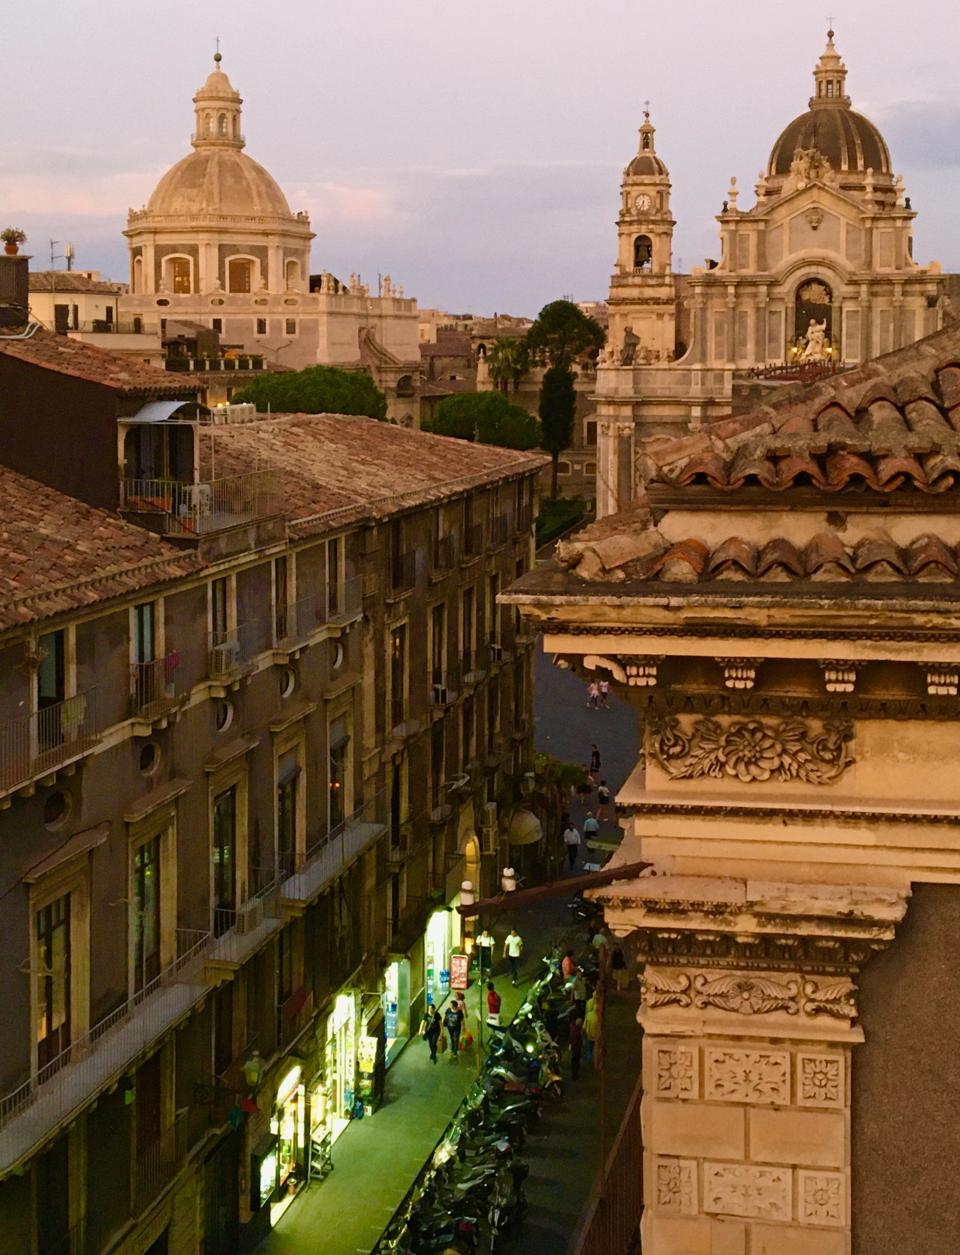 An evening scene in the city of Catania